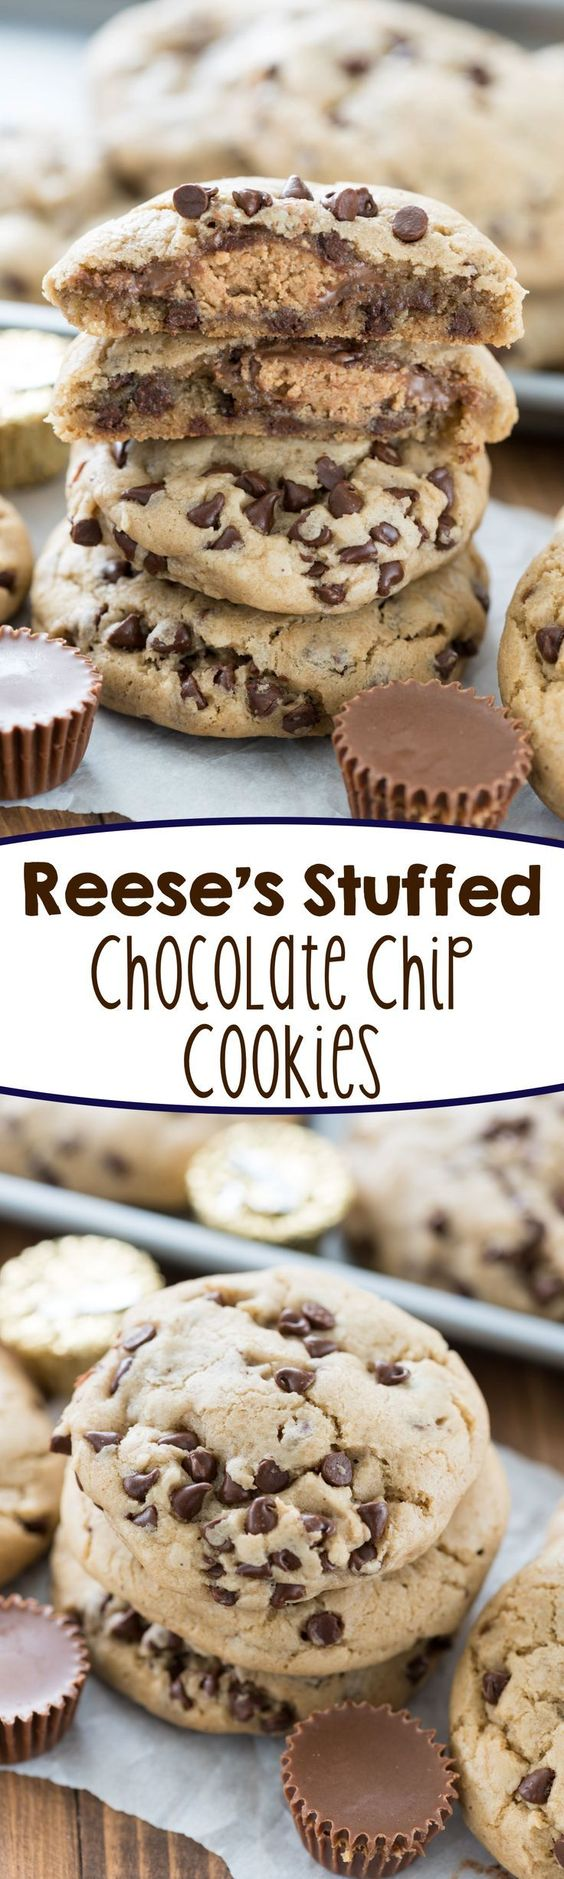 Reese's Stuffed Chocolate Chip Cookies | Recipe